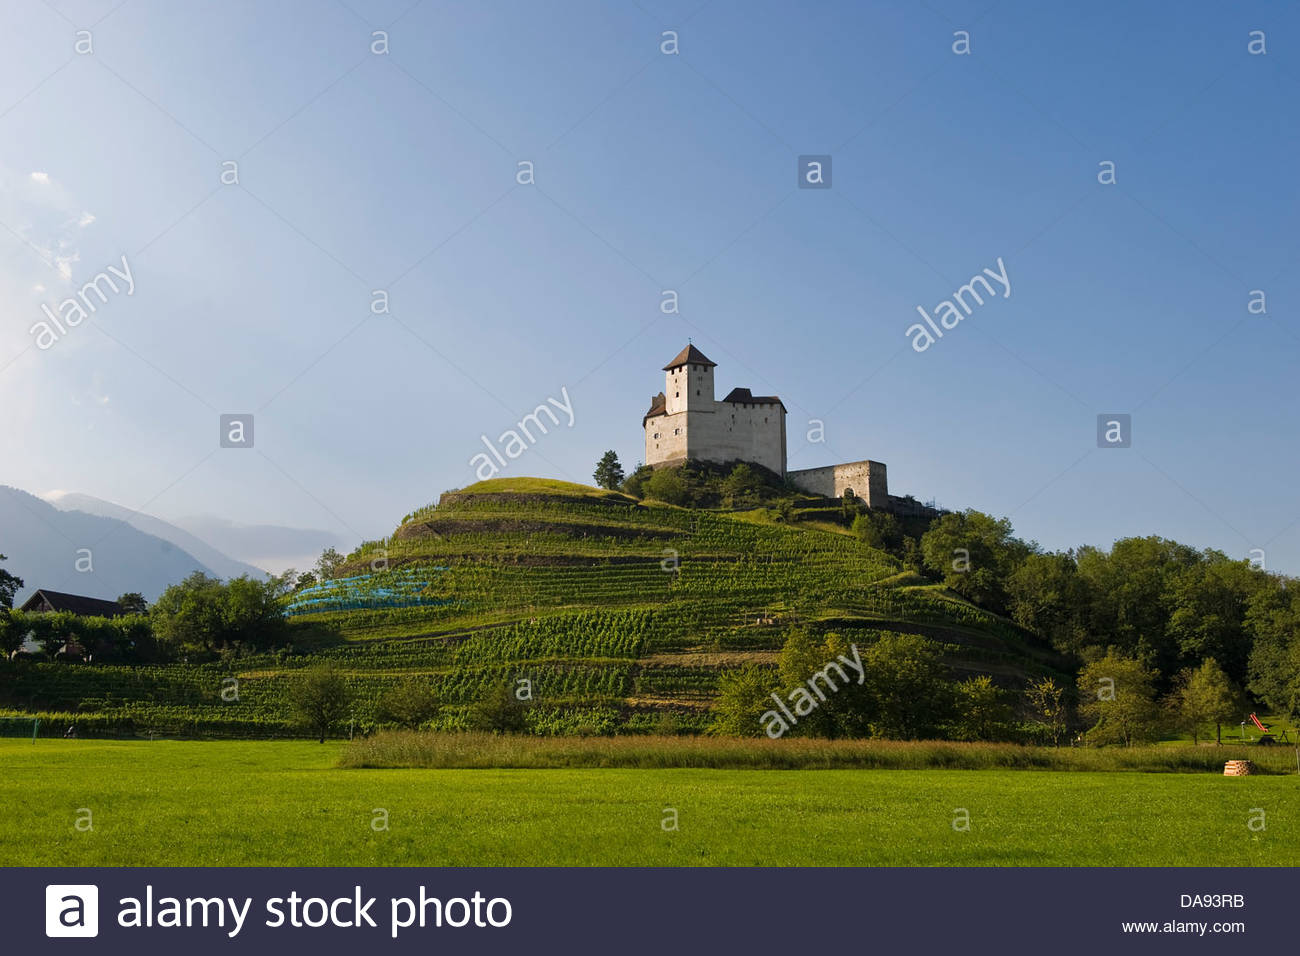 Liechtenstein,Balzers,Gutenburg Castle Stock Photo